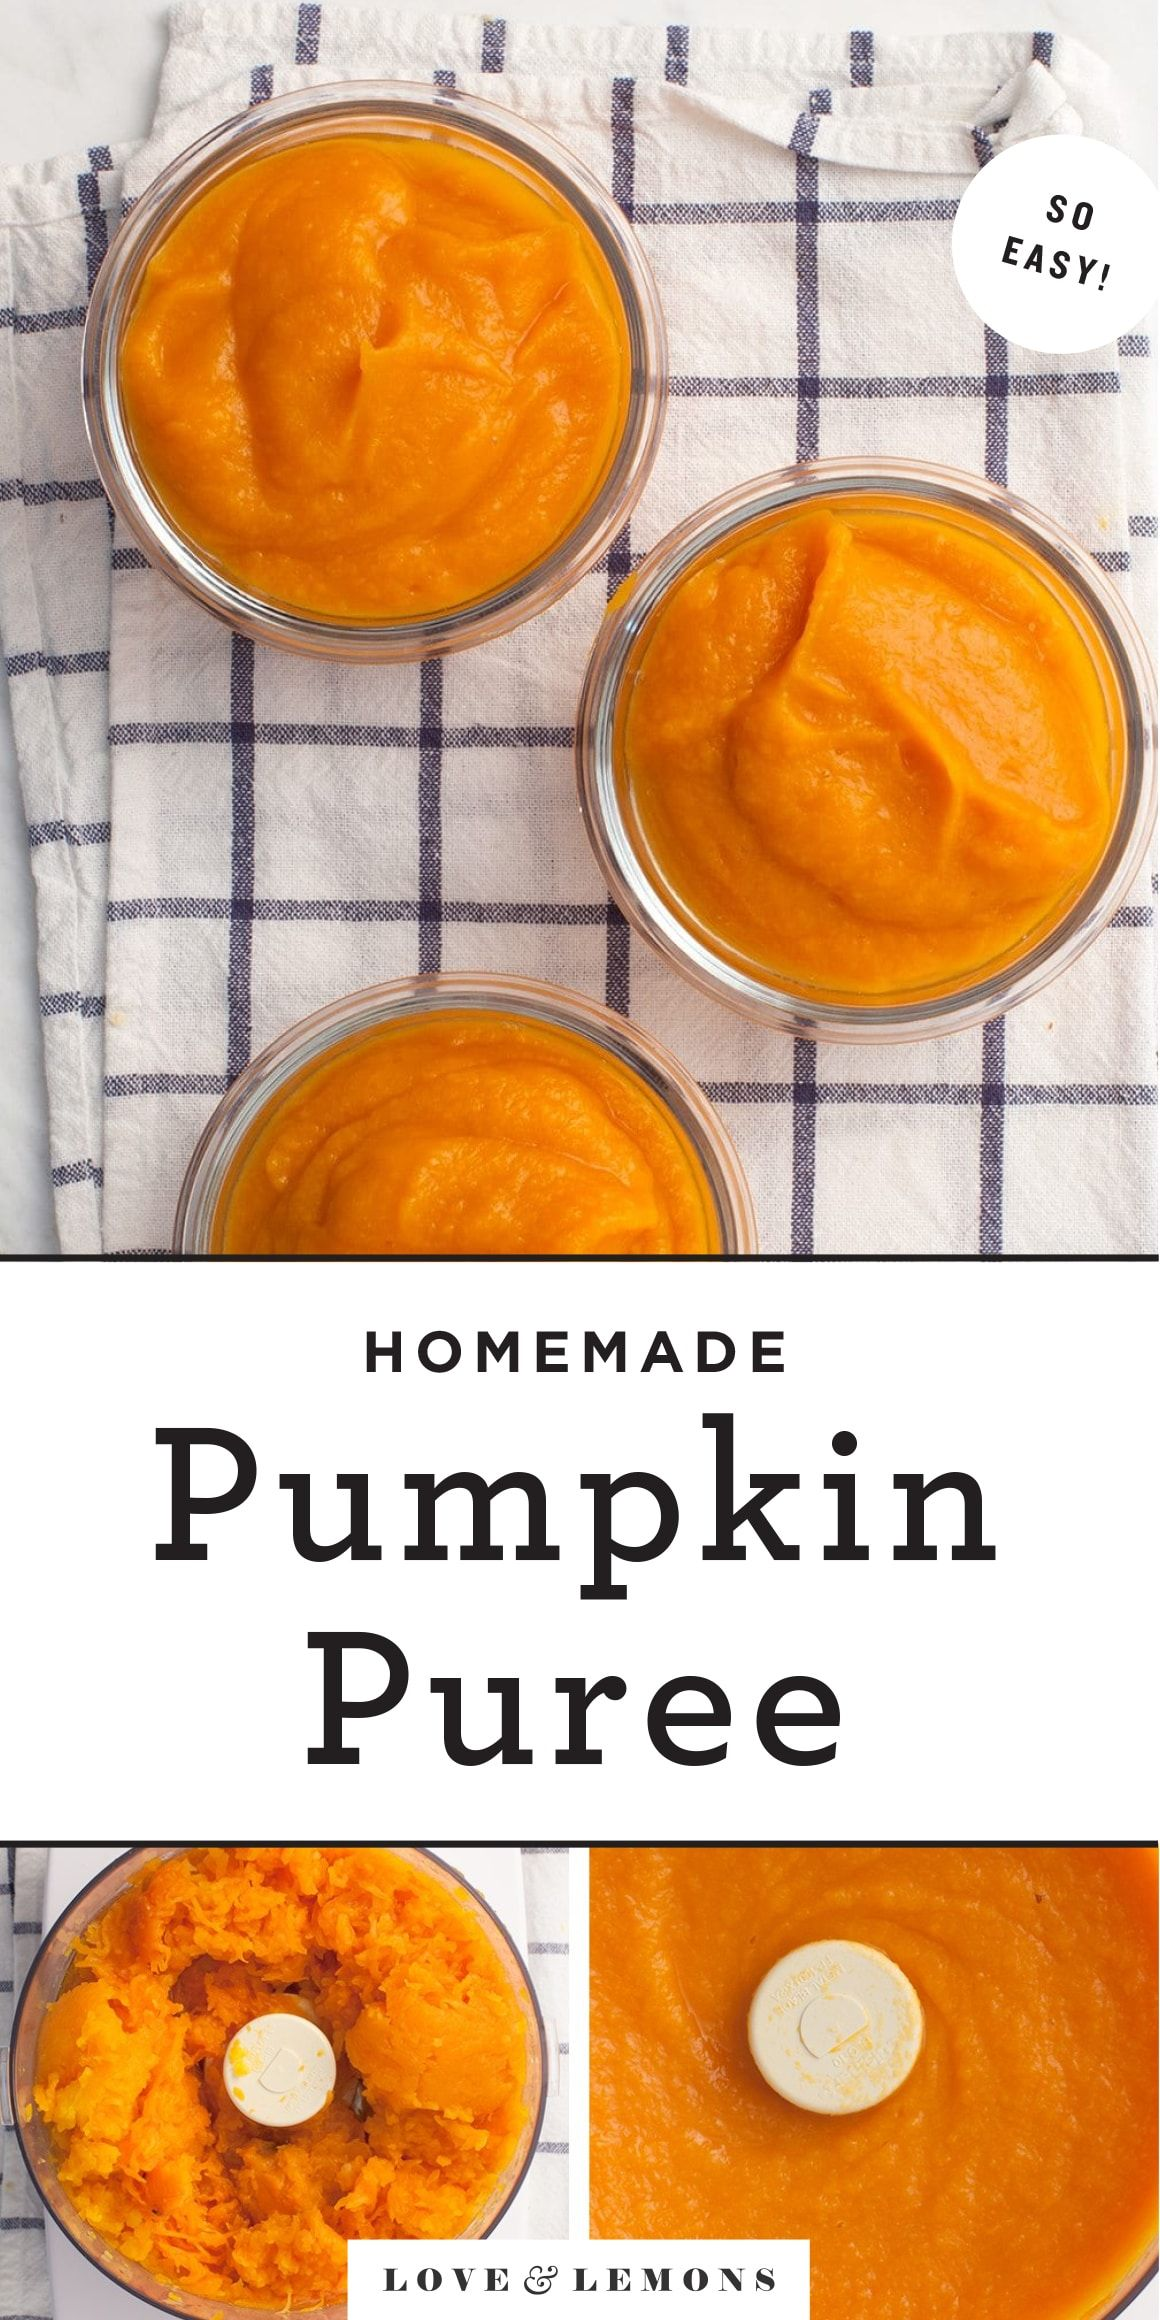 How To Make Pumpkin Puree Recipes By Love And Lemons In 2020 Pumpkin Puree Recipes Pureed Food Recipes Pumpkin Spice Recipe